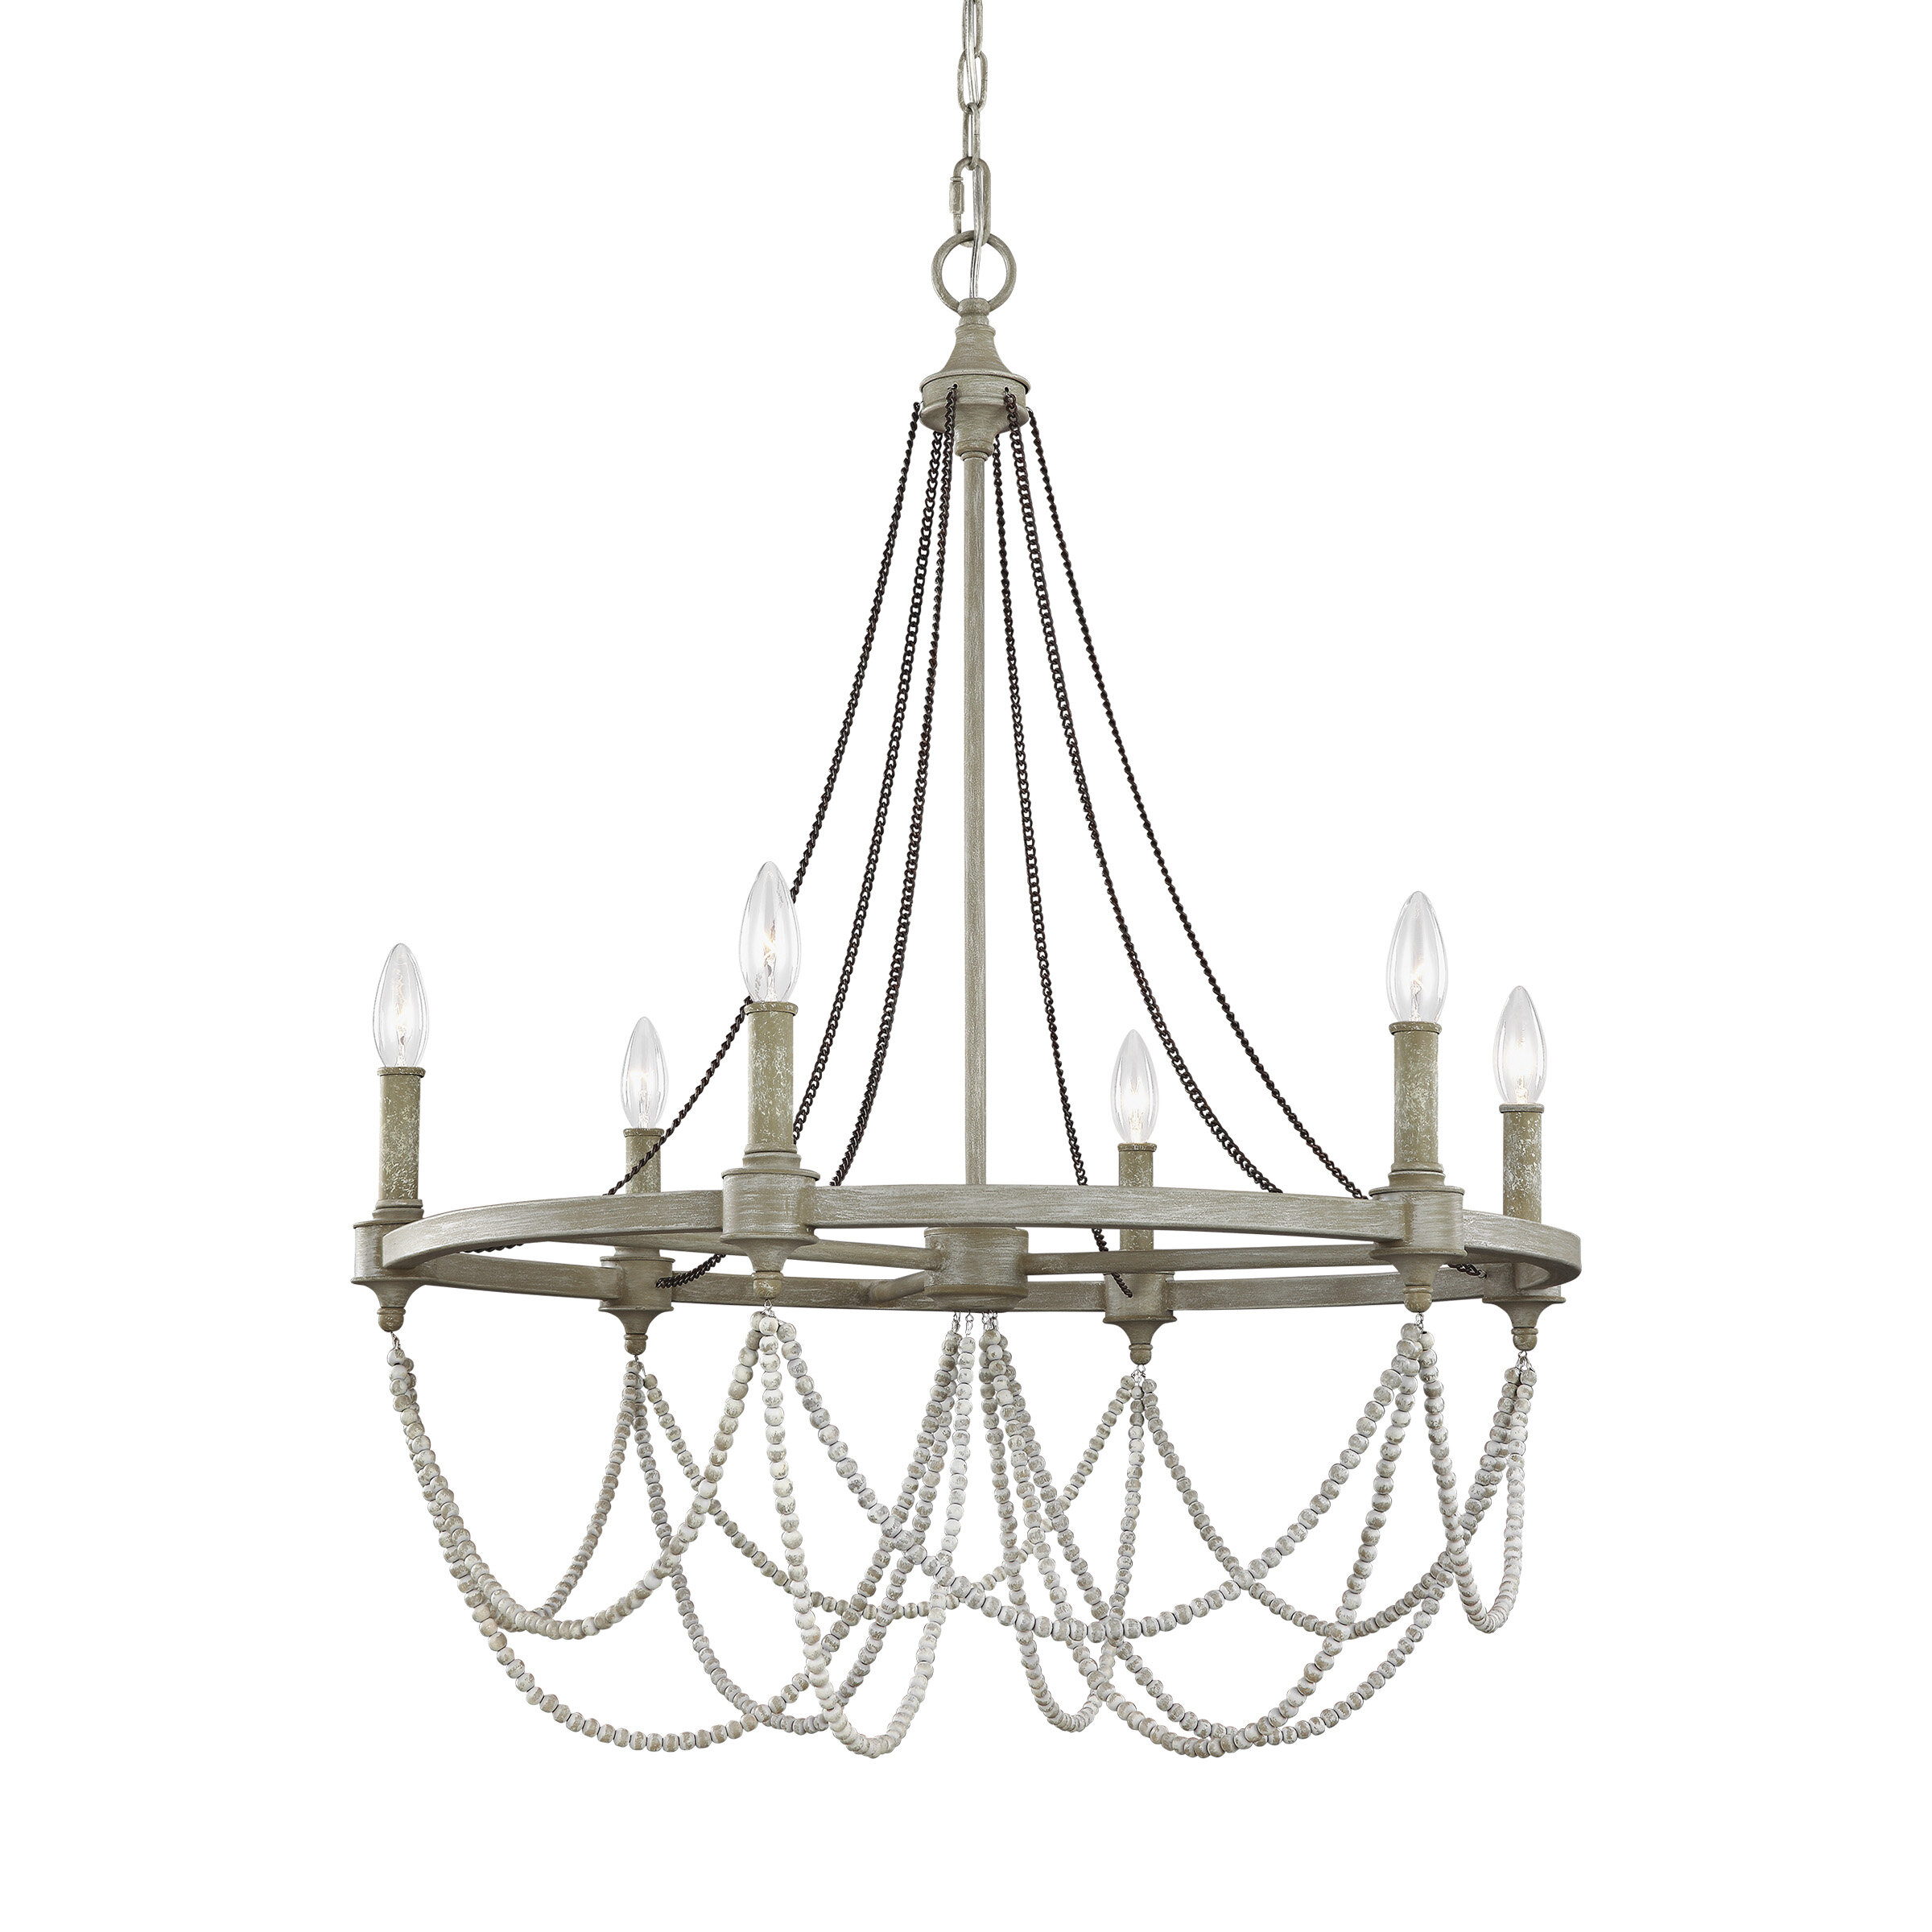 Fitzgibbon 6 Light Candle Style Chandelier Throughout Diaz 6 Light Candle Style Chandeliers (View 3 of 30)